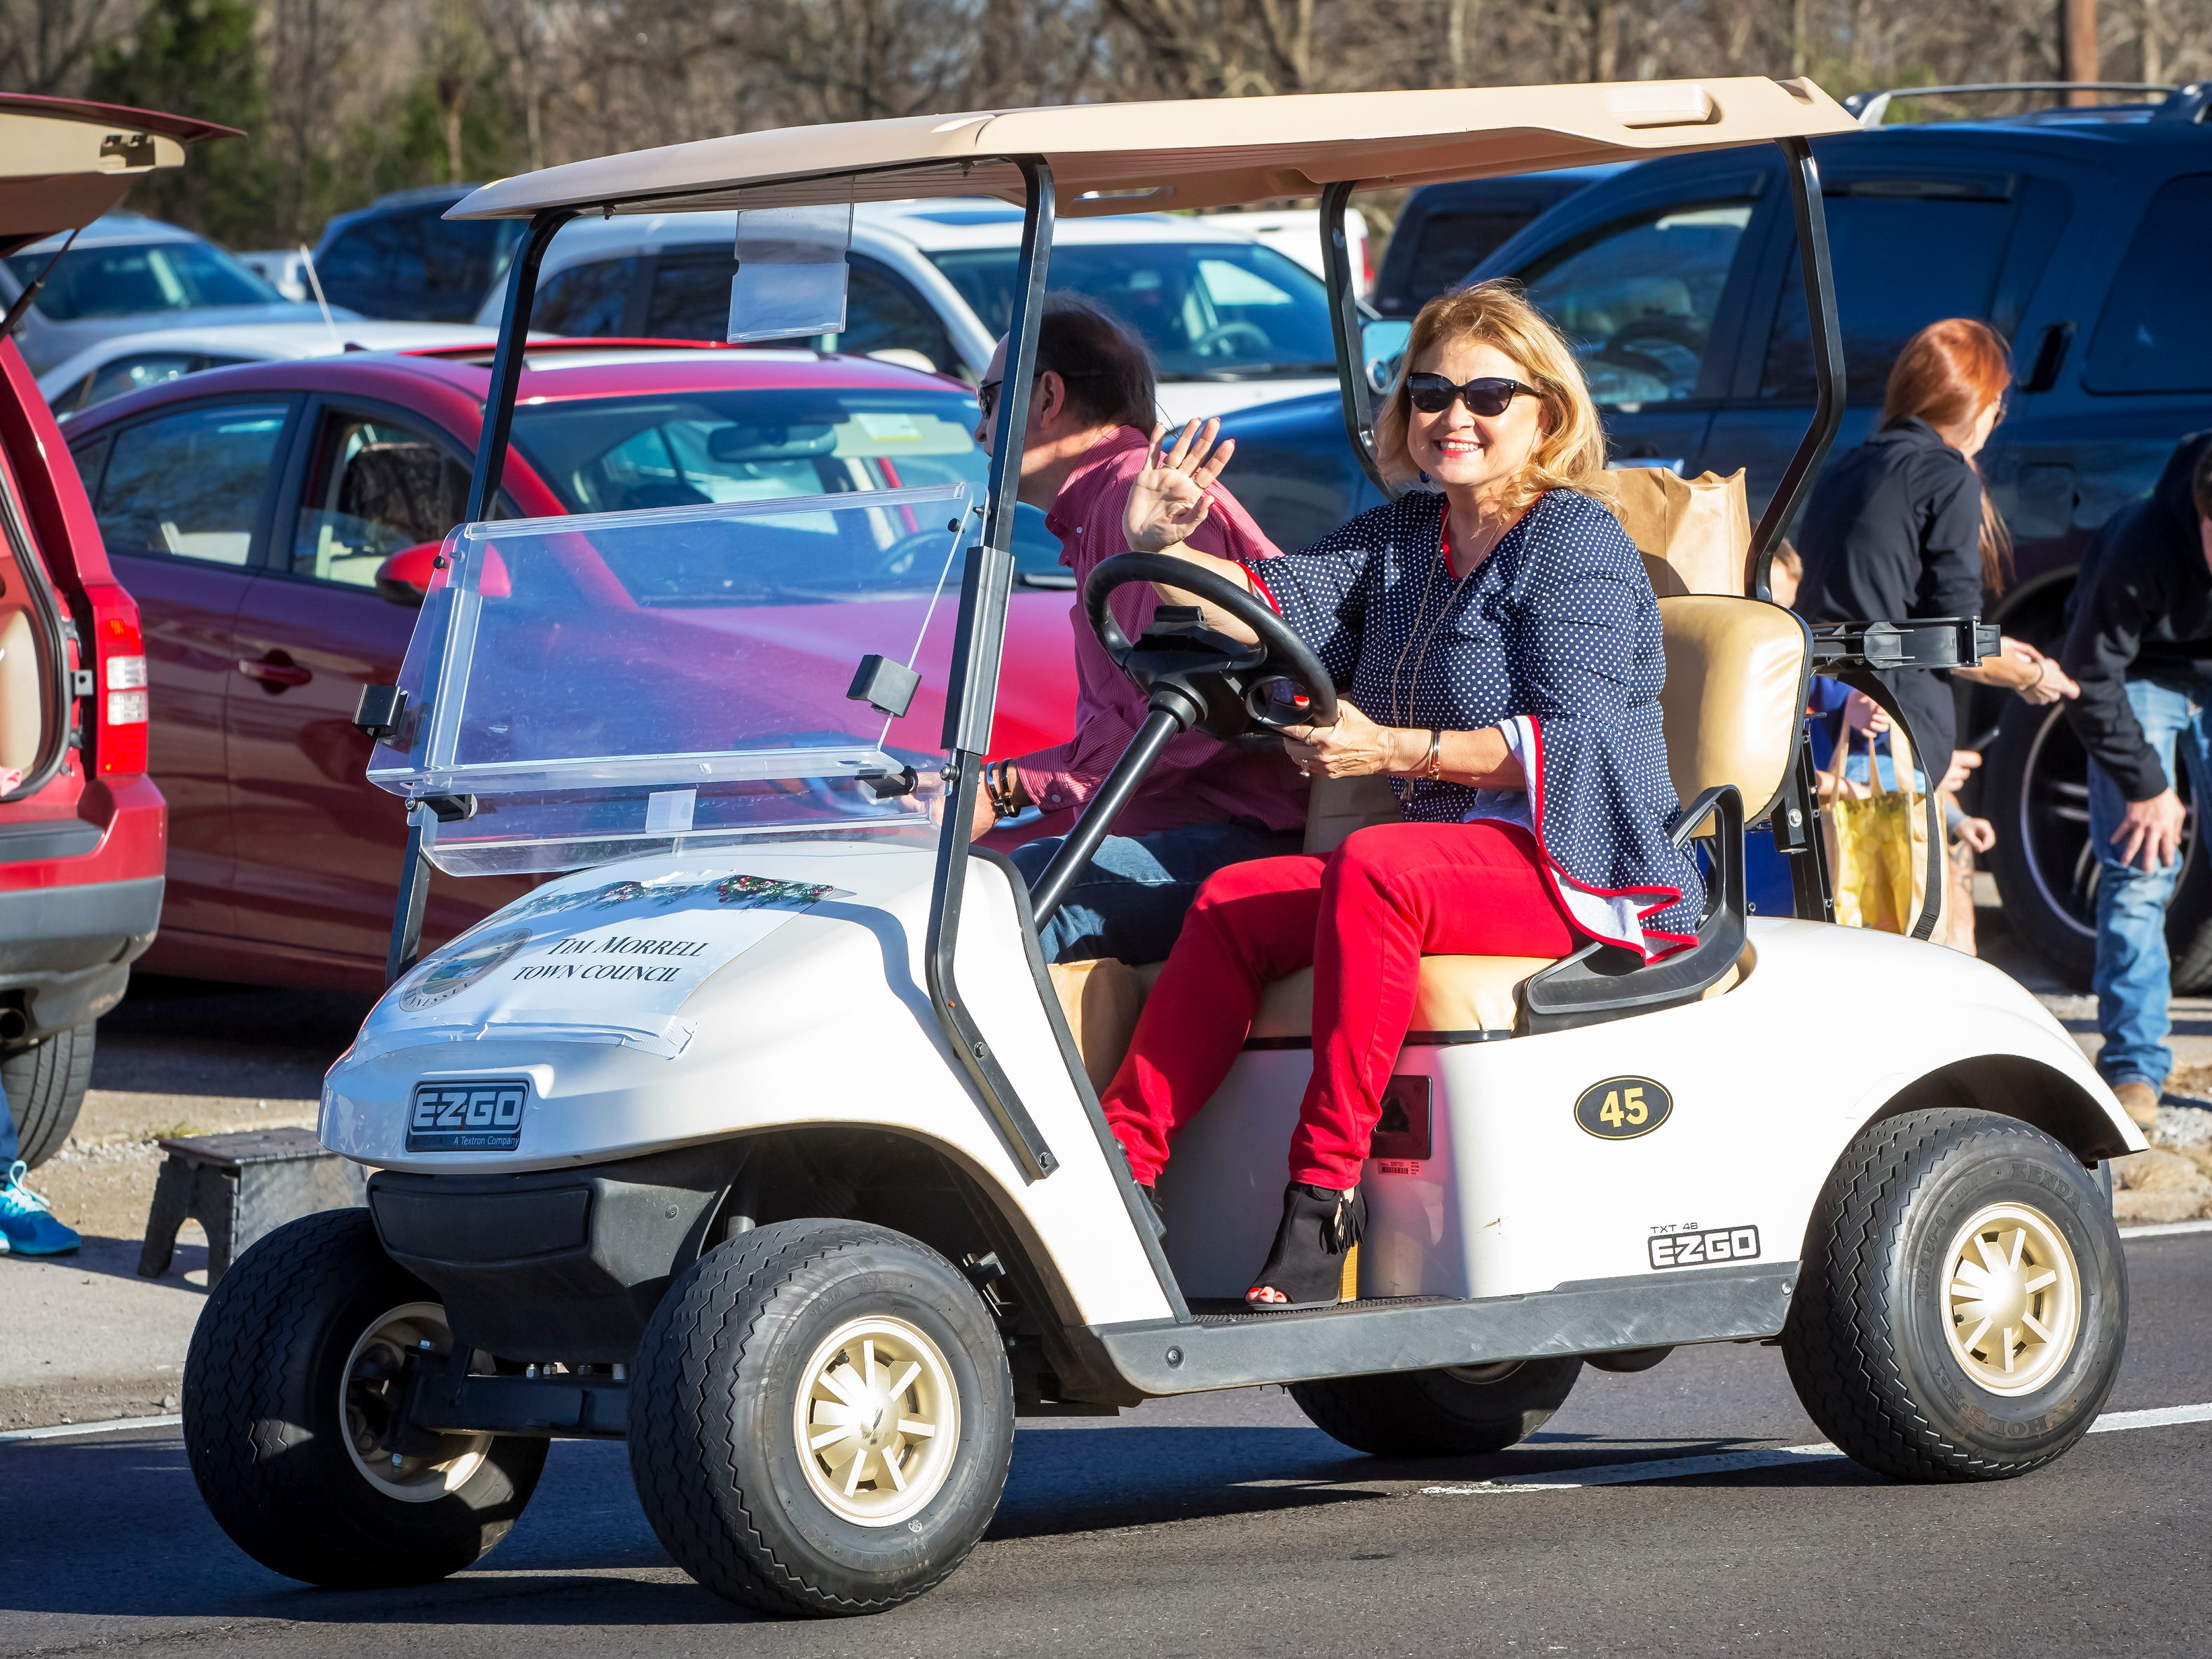 Smyrna's 44th annual Christmas parade was held Sunday, Dec. 2, 2018. Donna Morrell, wife of Councilman Tim Morrell waves to the crowd.